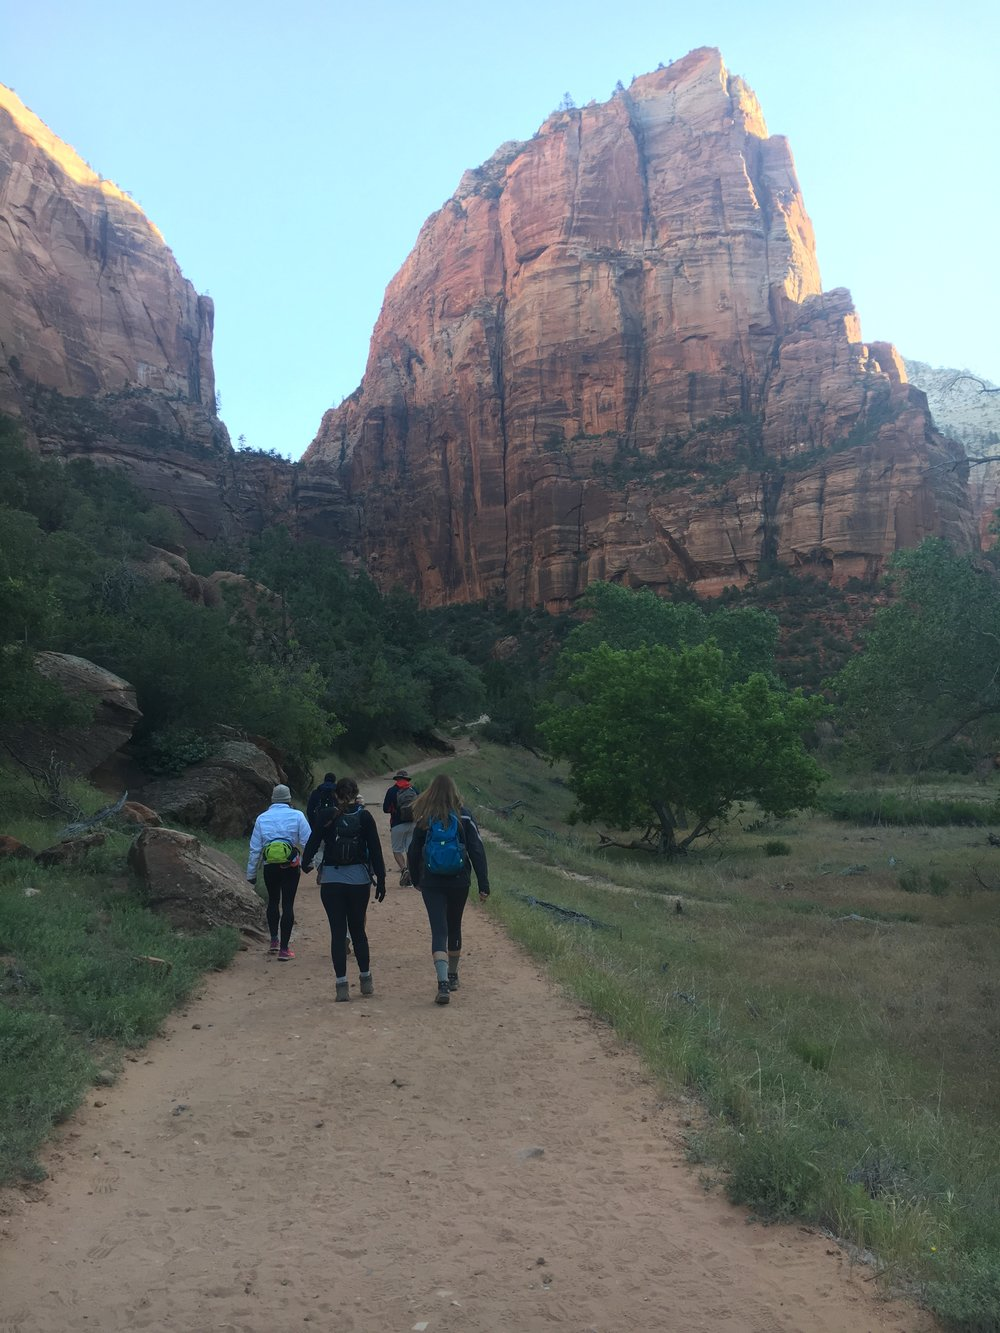 The approach to Angels Landing